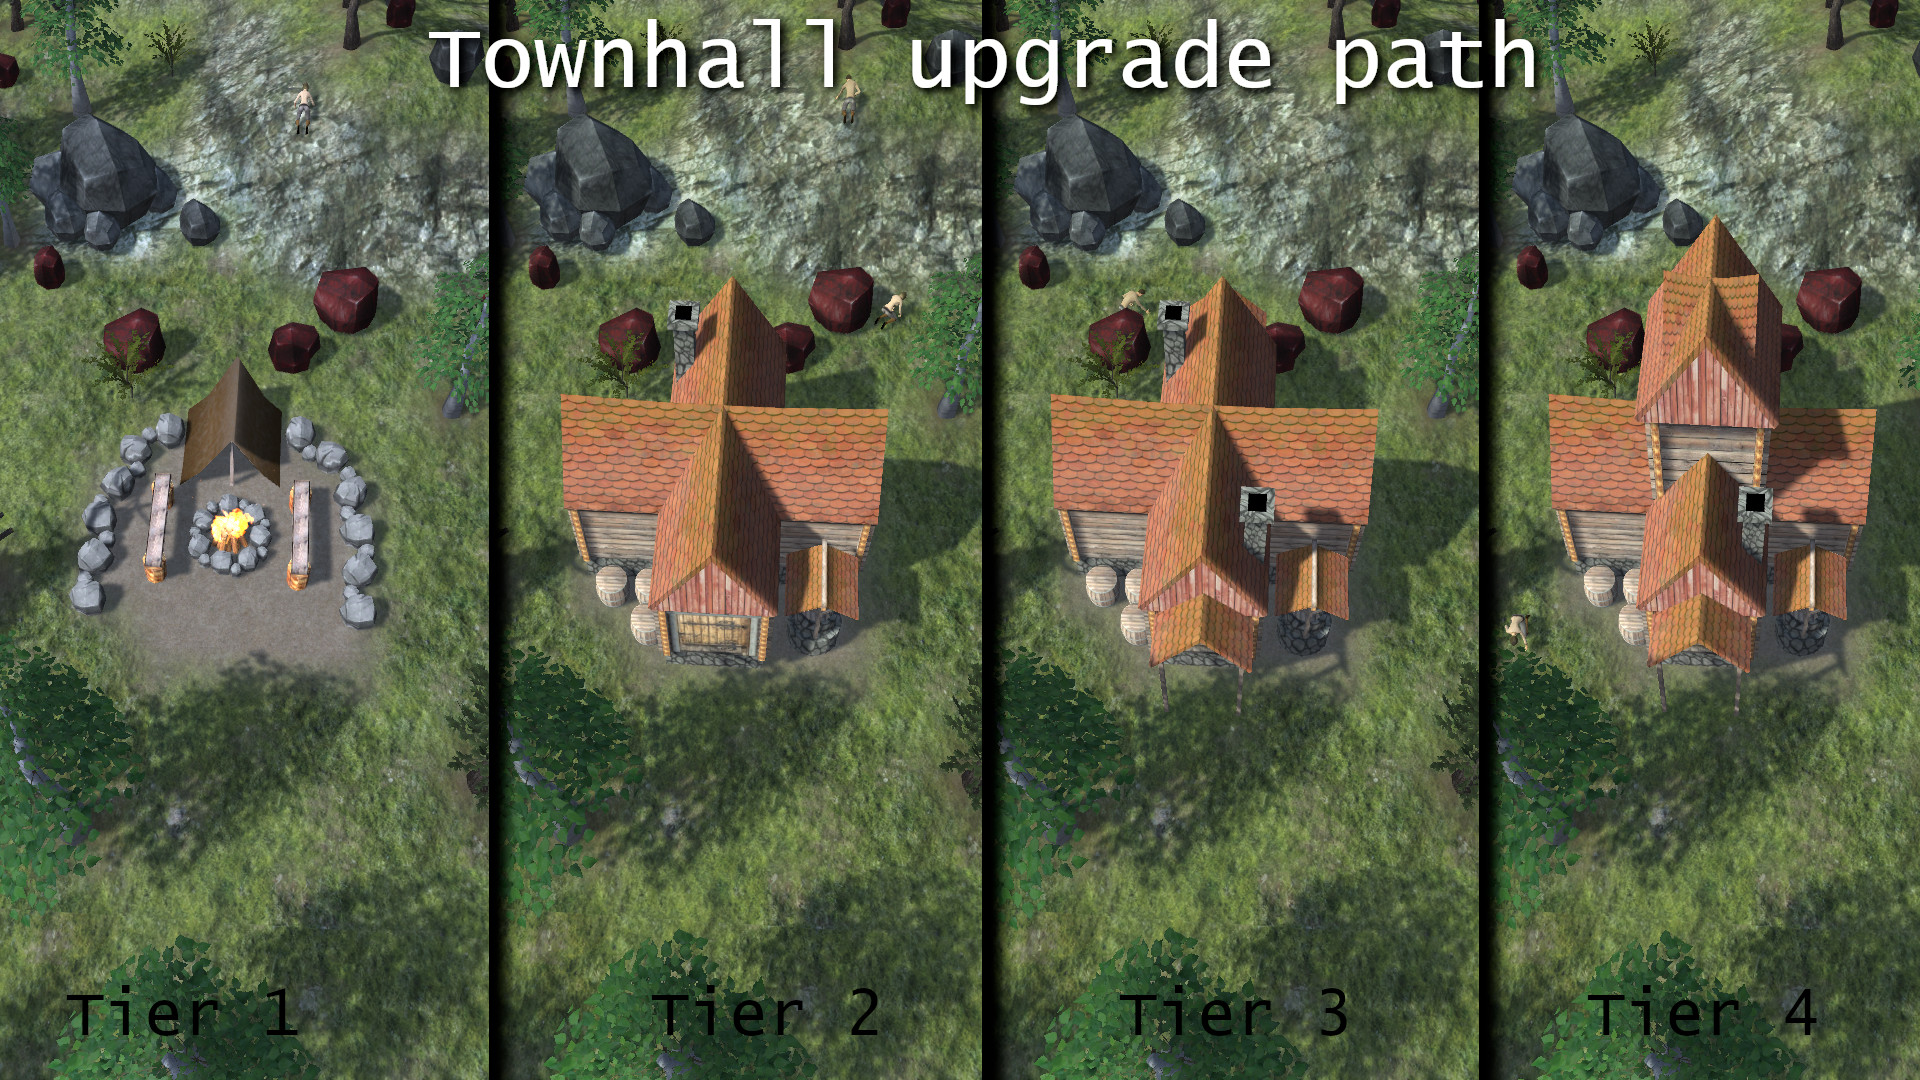 TownHall UpgradePath